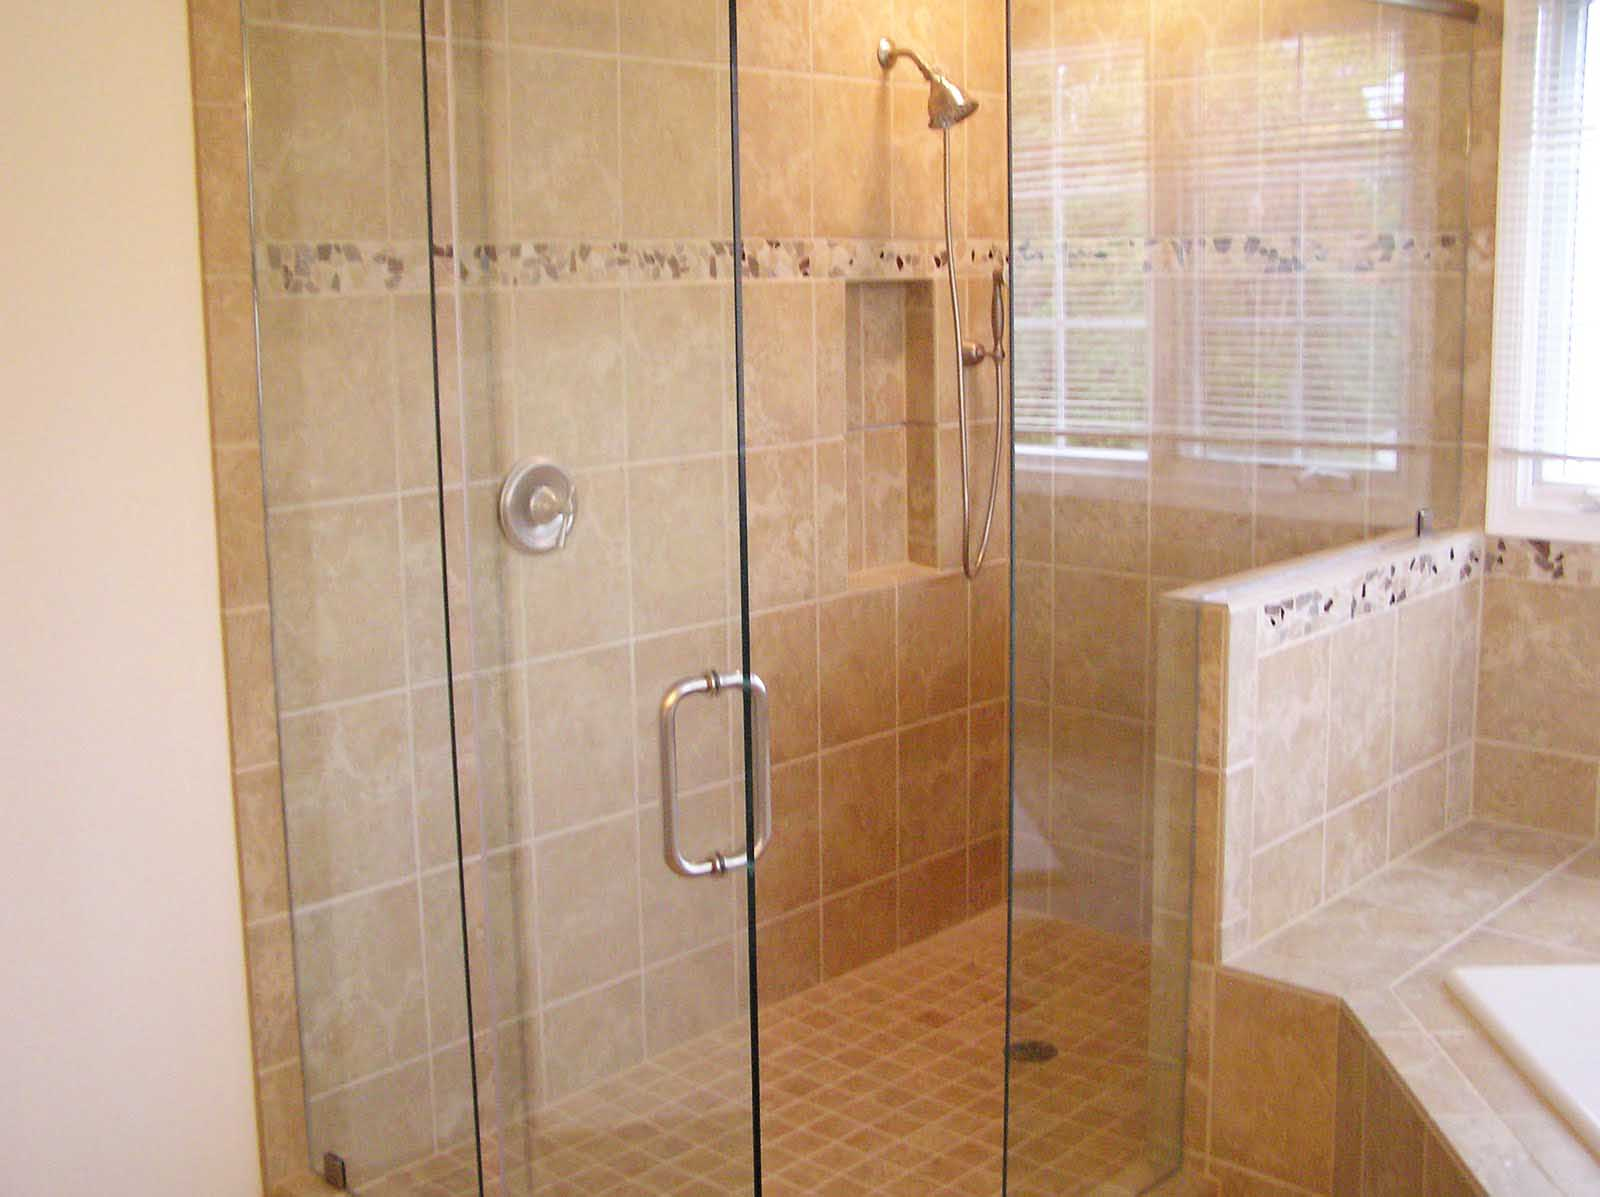 Amazing Design Of The Bathroom Areas With Beige Wall And Glass Wall Added  With Bathroom Shower